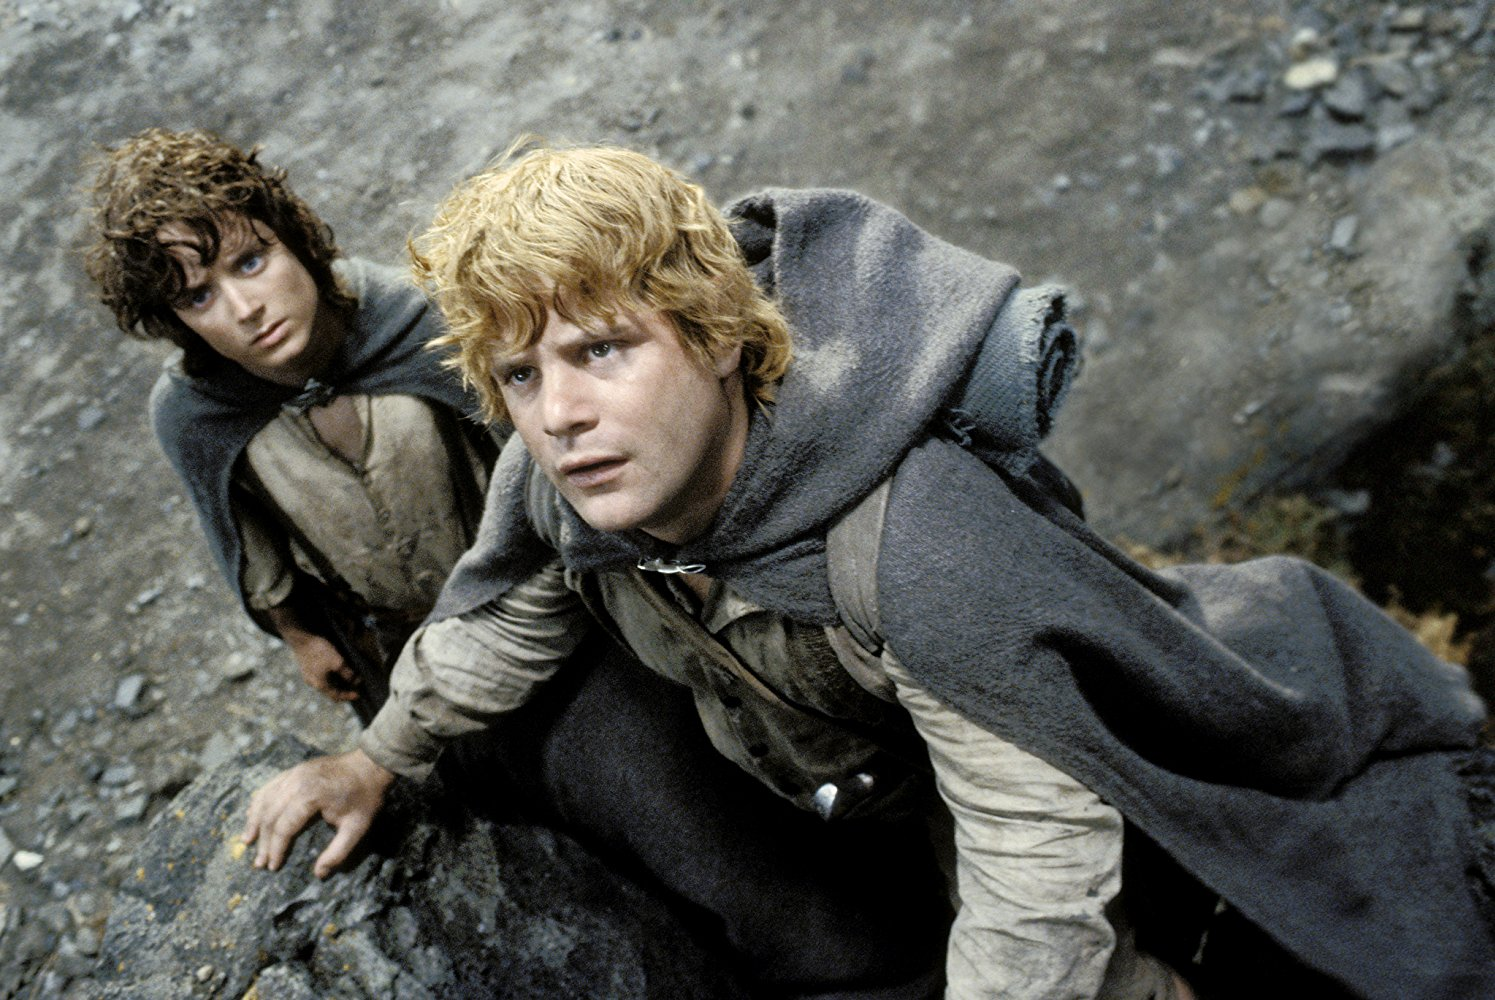 Frodo Baggins (Elijah Wood) and Samwise Gamgee (Sean Astin) travel on to Mordor in The Lord of the Rings The Return of the King (2003)